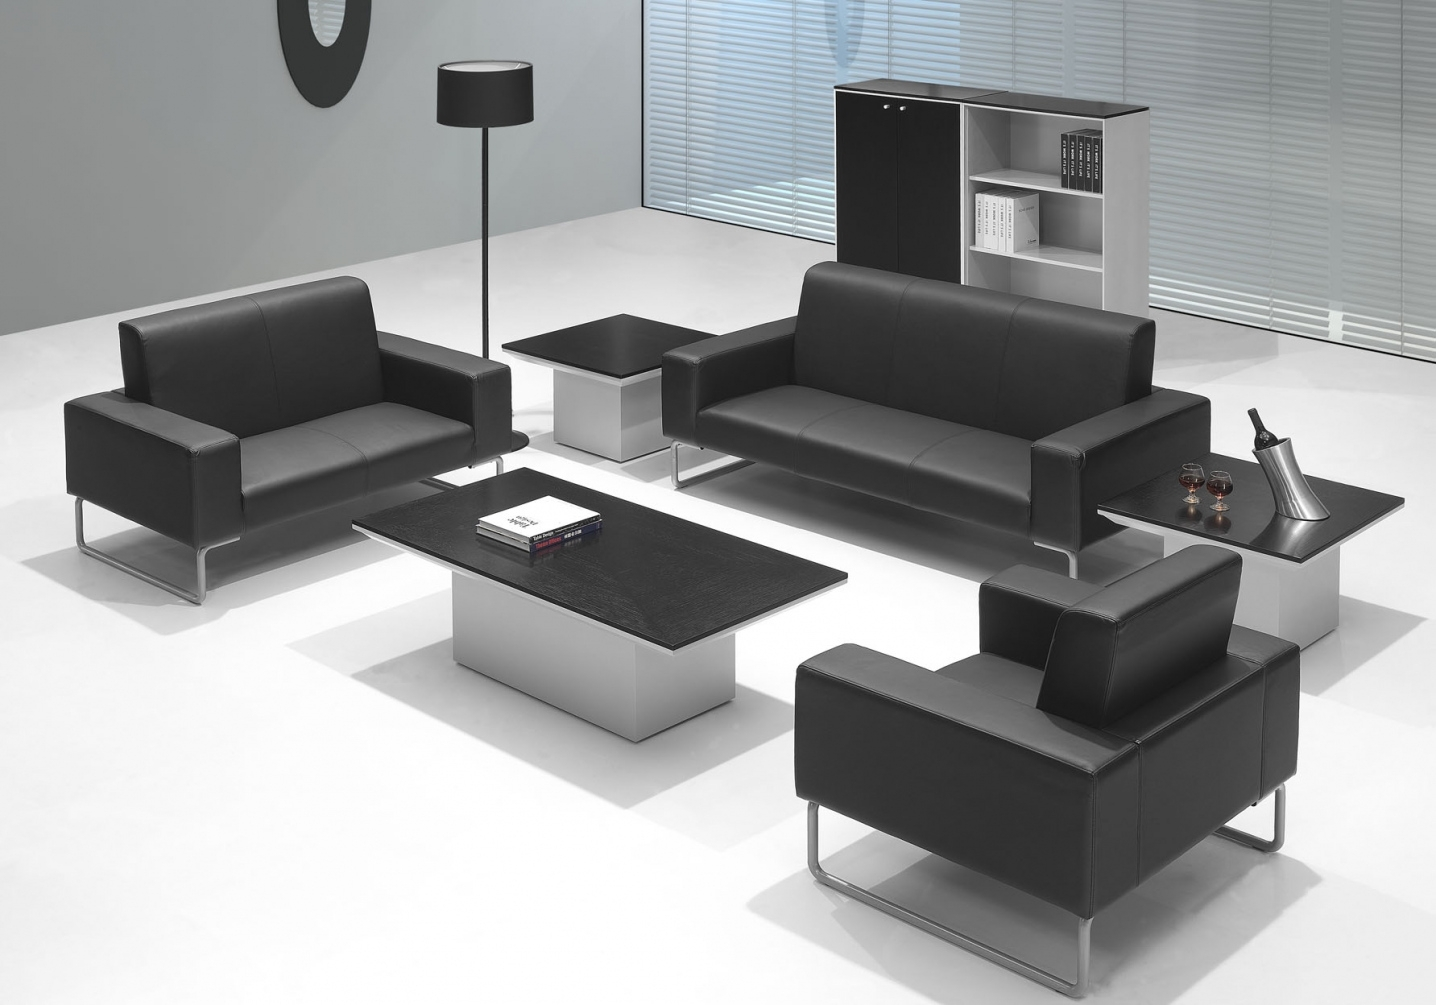 Office Sofas And Chairs – Design Desk Ideas | Www.buyanessaycheap throughout Office Sofas (Image 7 of 10)